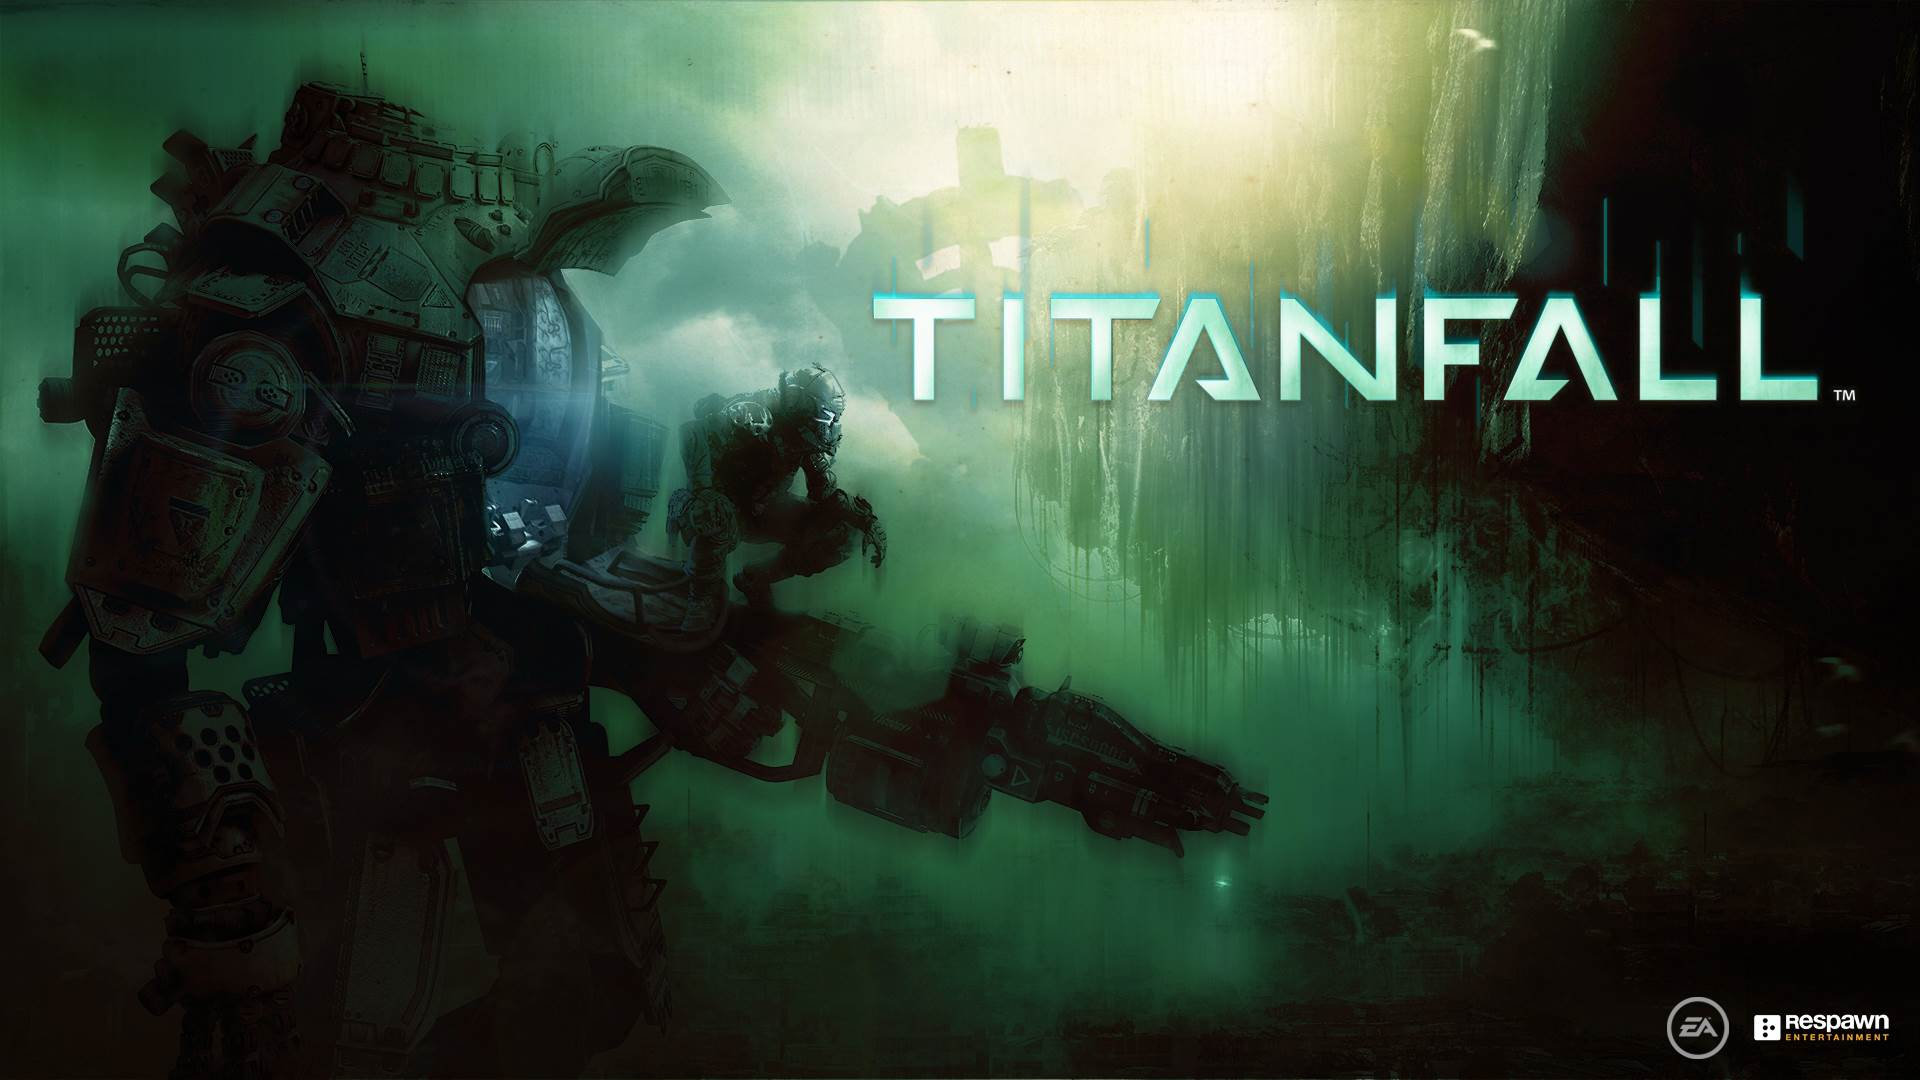 Titanfall Wallpapers In 1080P HD